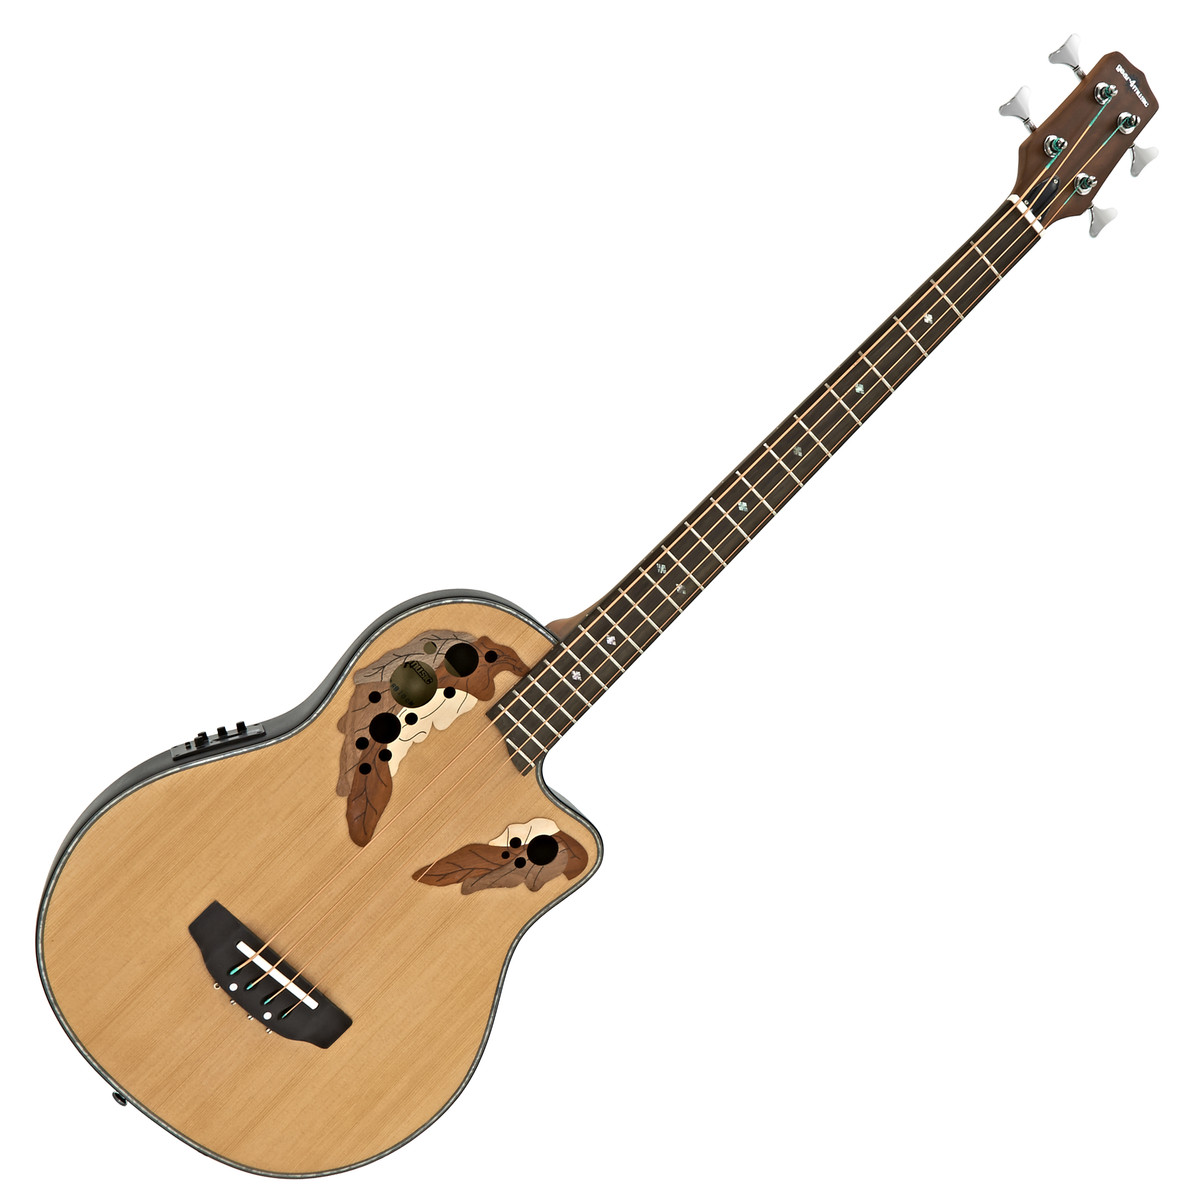 roundback electro acoustic bass guitar by gear4music b stock at gear4music. Black Bedroom Furniture Sets. Home Design Ideas